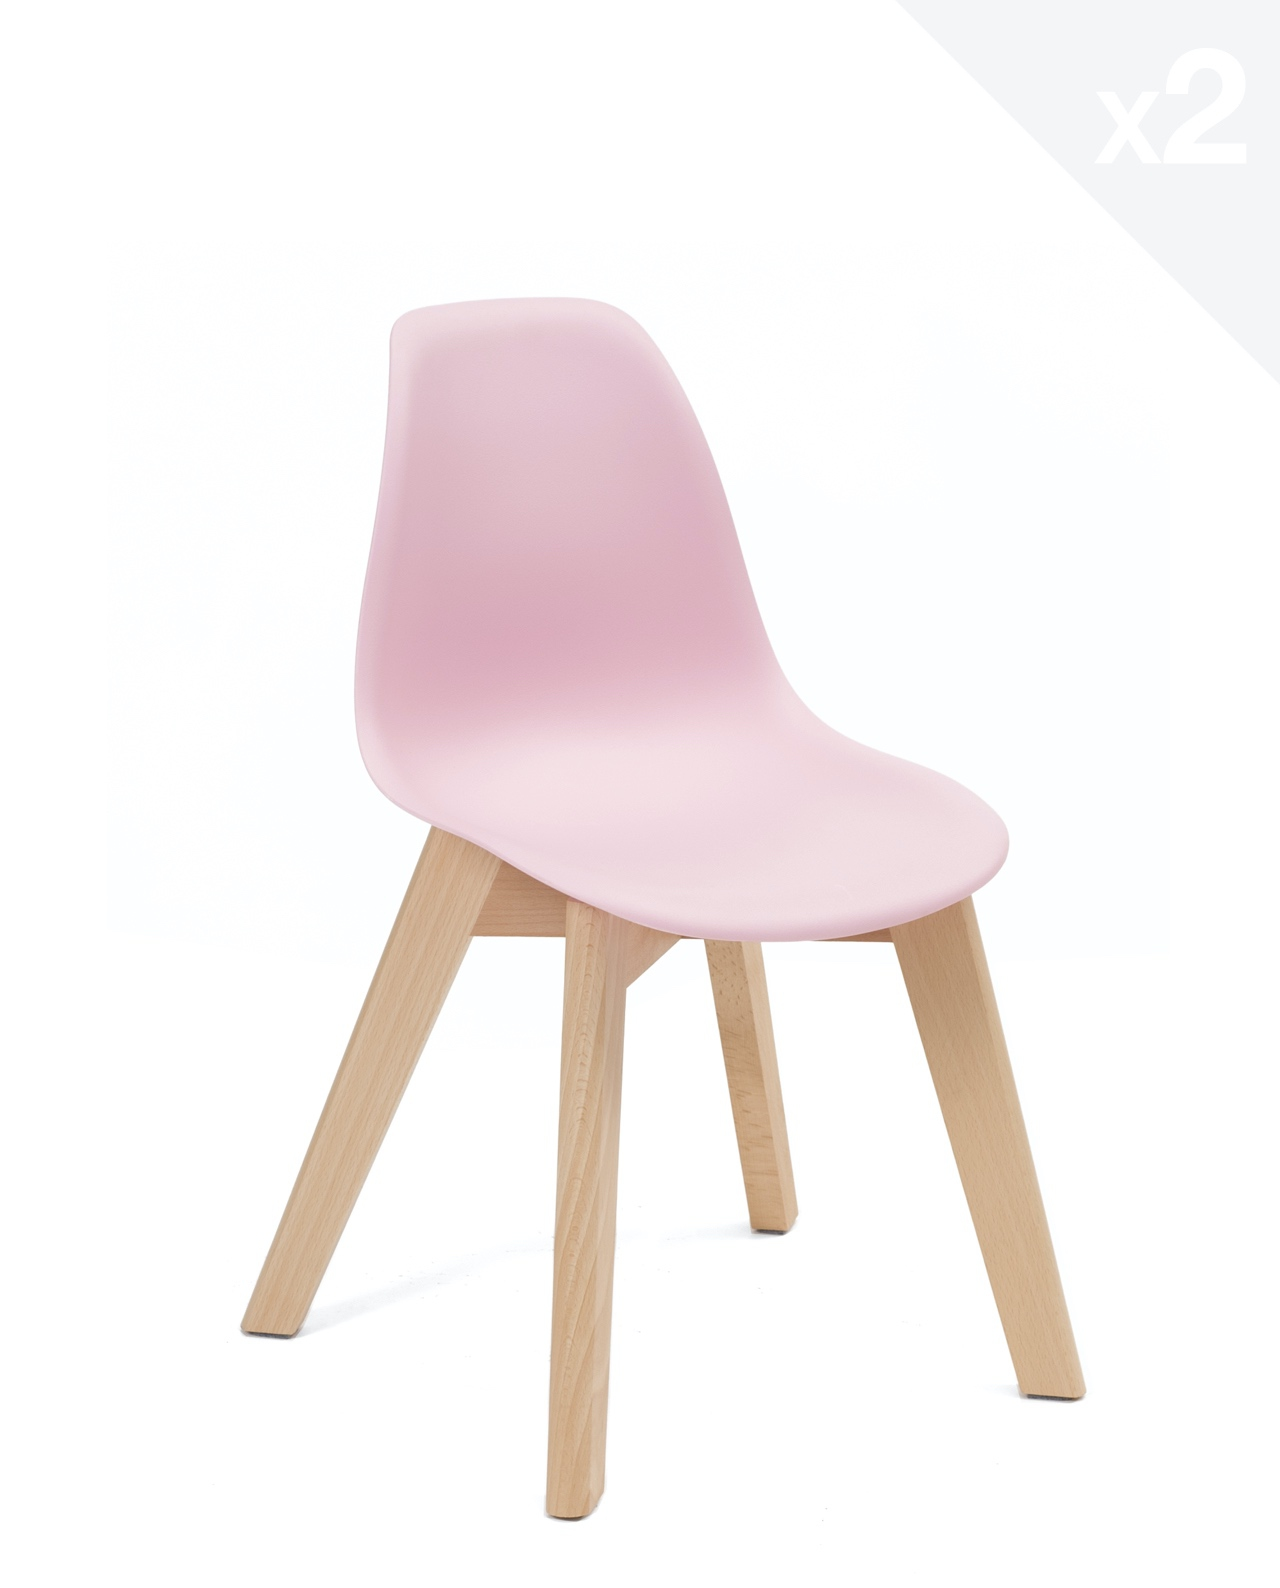 Chaises Scandinaves Enfant JUBA - Lot de 7